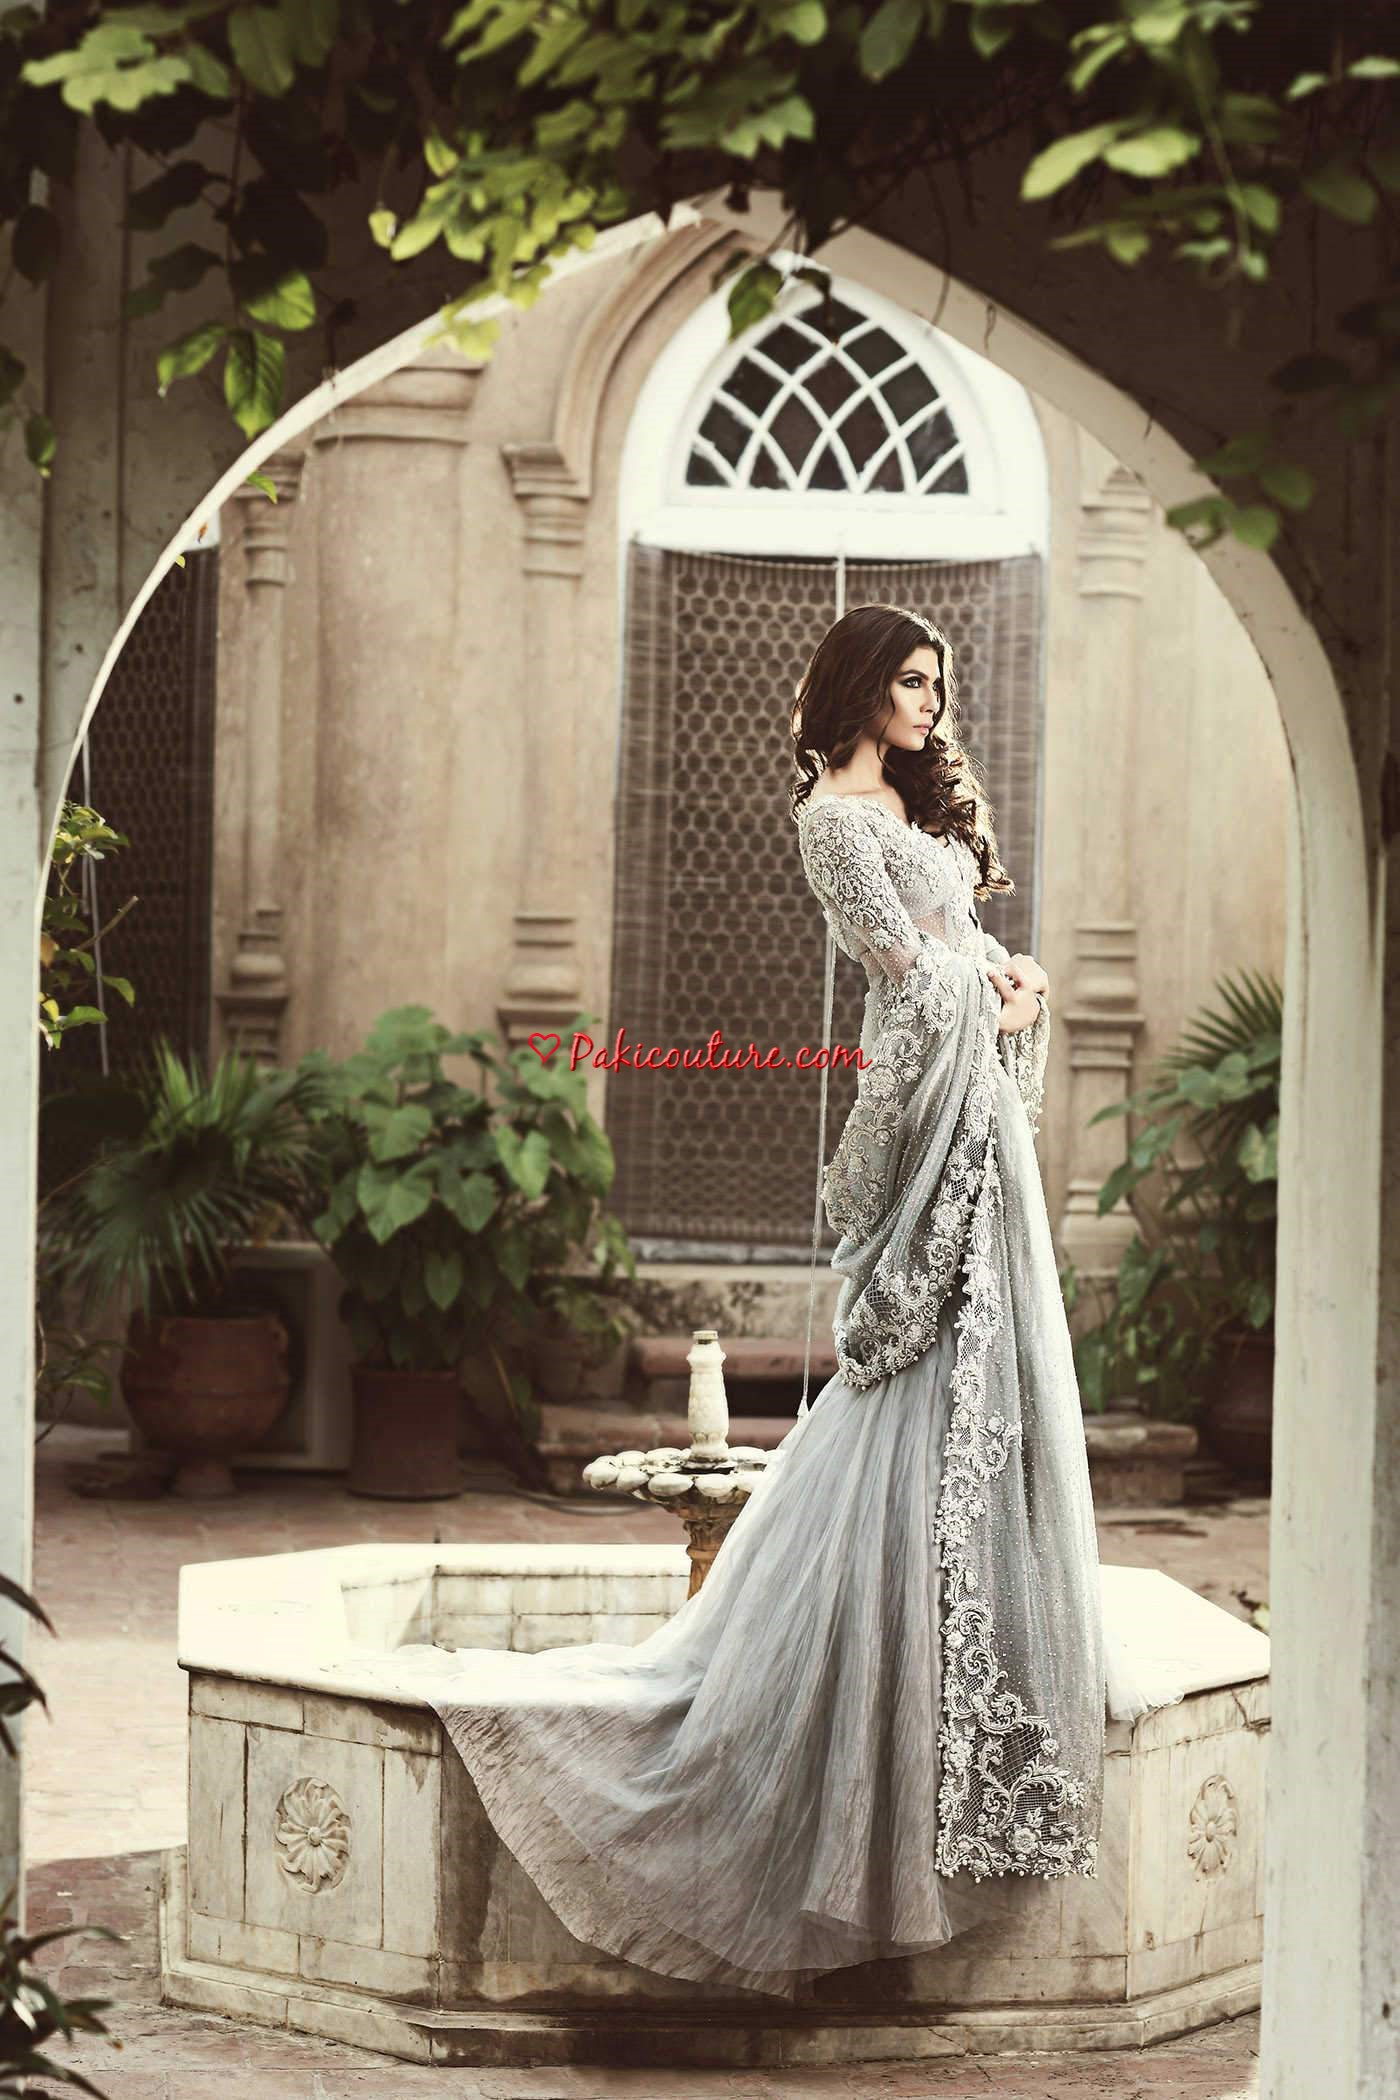 85 Best Son Hwa Min Images On Pinterest: Bridal Wear Collection! Pakistani Bridal And Wedding